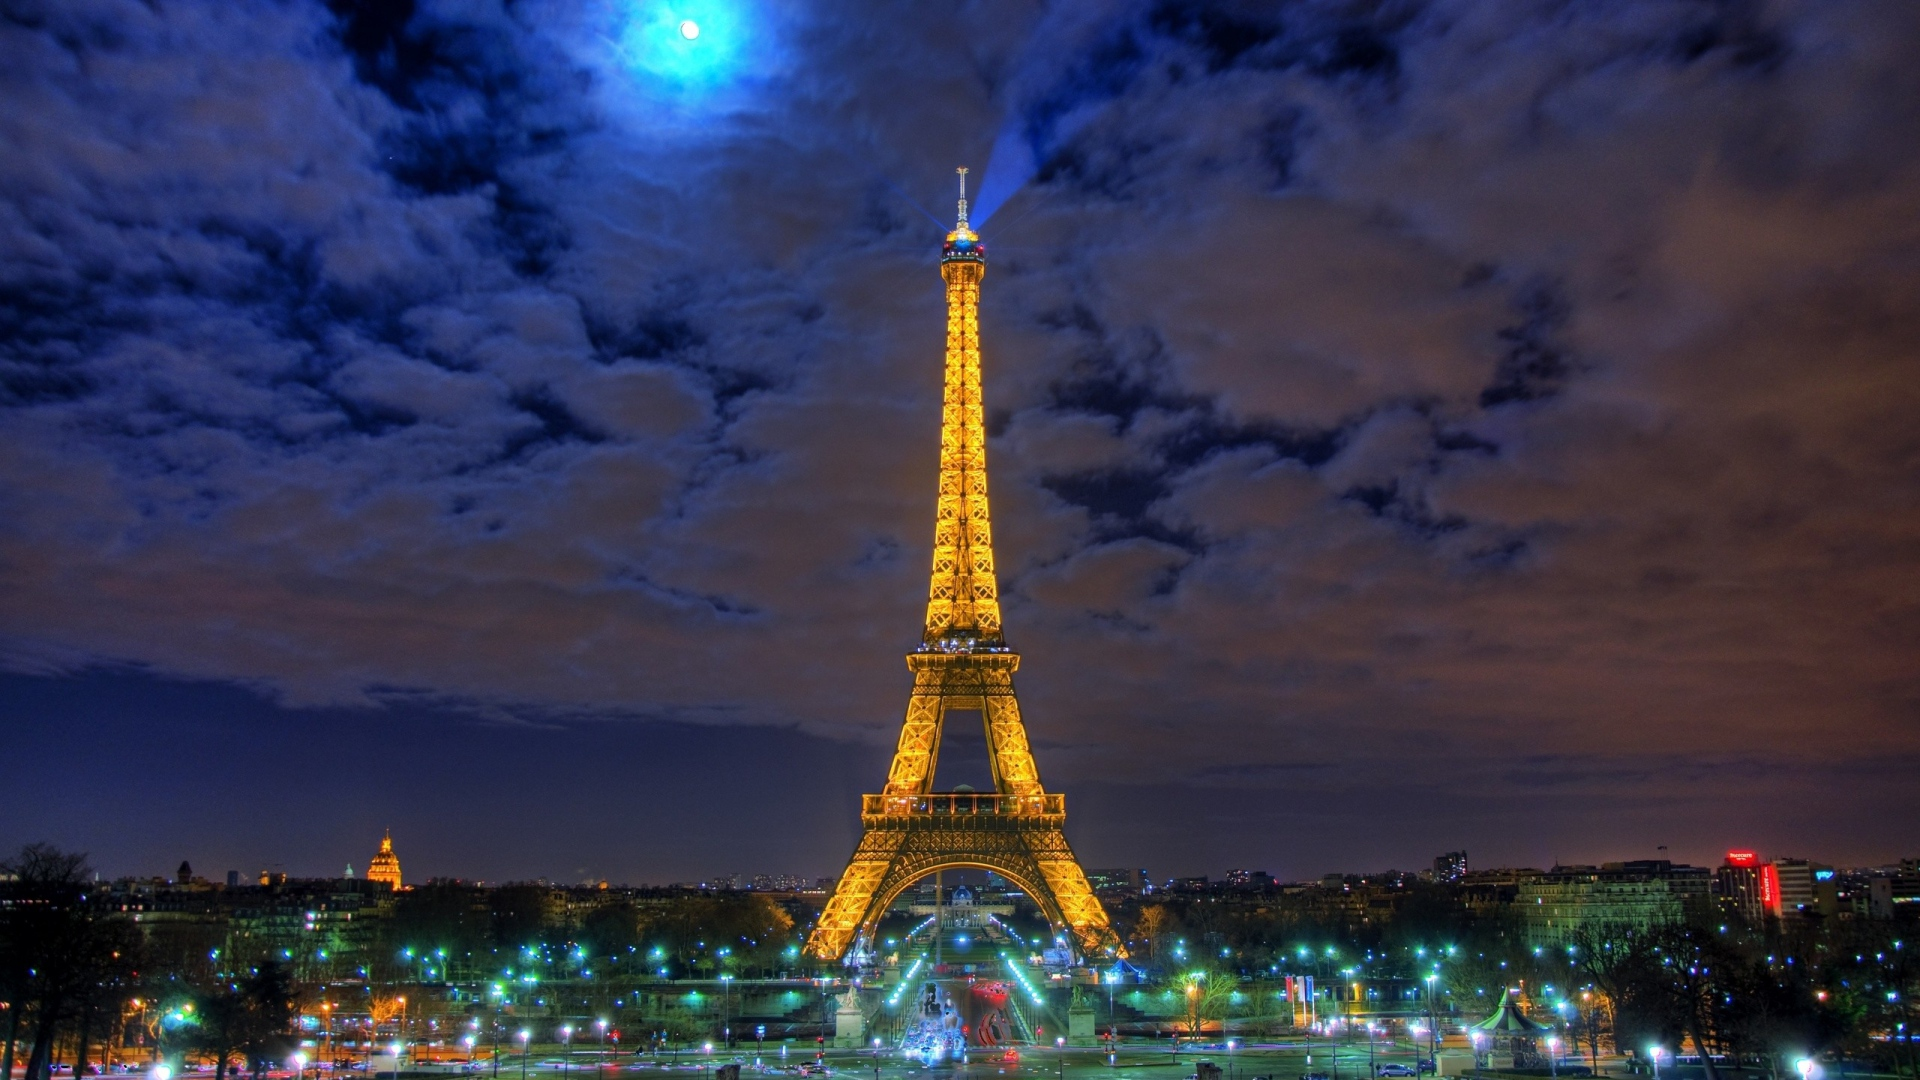 Download Wallpaper 1920x1080 Eiffel Tower Paris France Black White Point Of Interest Full Hd 1080p Hd Background